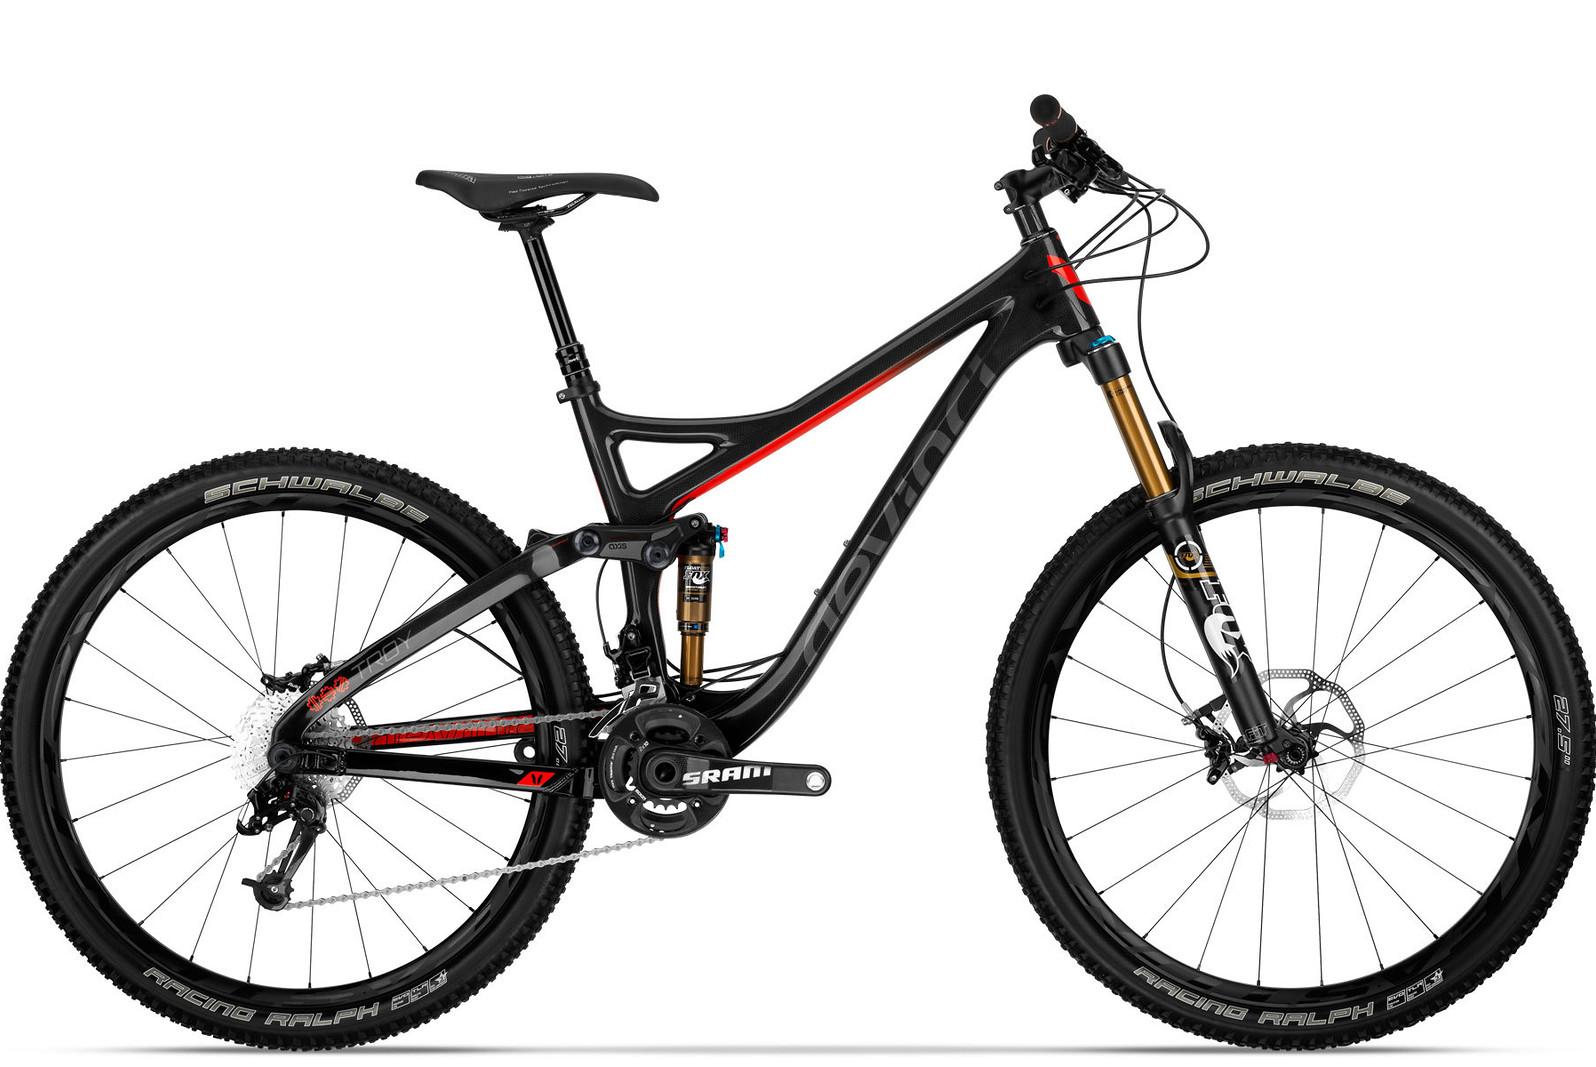 2014 Devinci Troy Carbon SL  2014 Troy Carbon